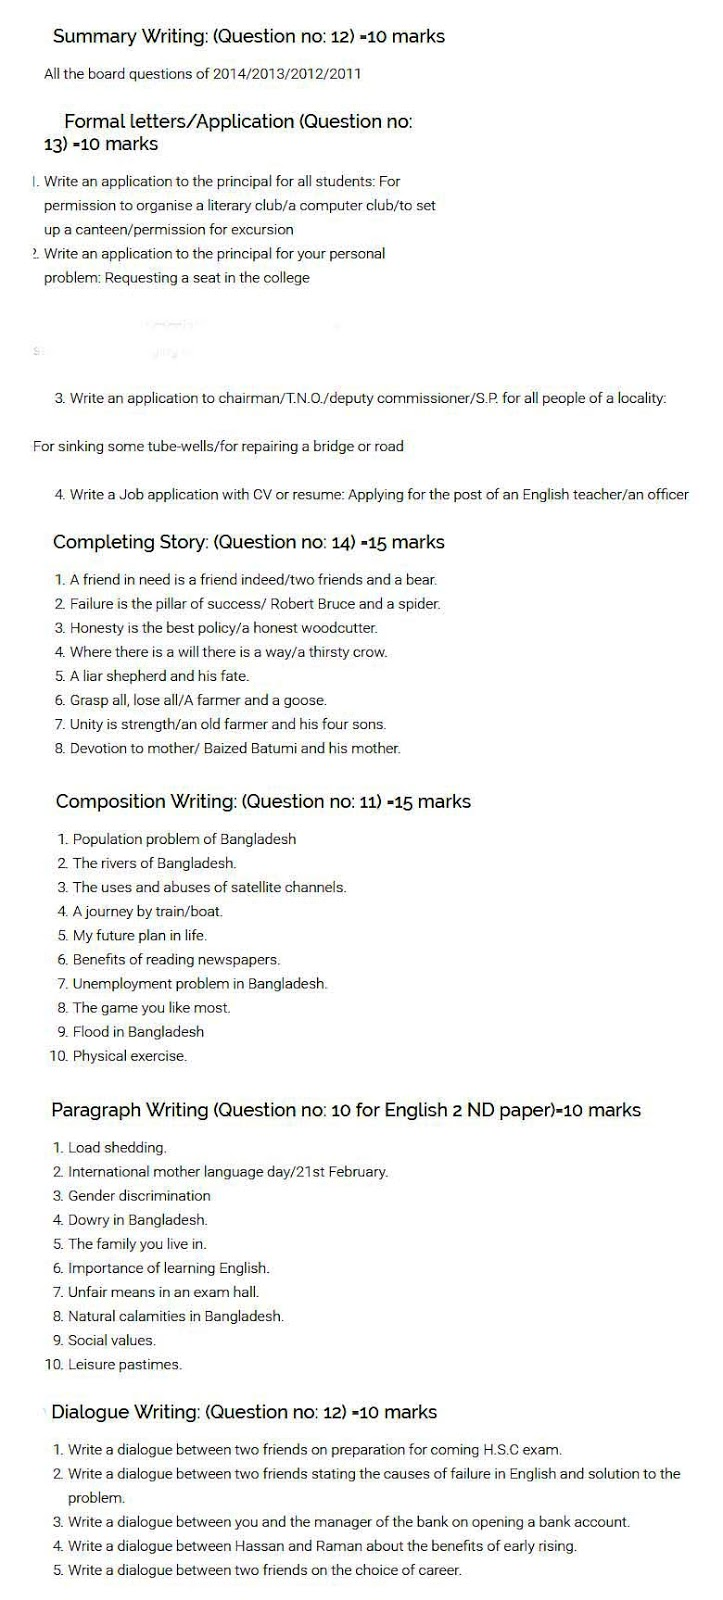 Business Essay Format Copy Of Business Letter Dowry Essay Word Examples Of Explanation Essay  Hscbenglishbnd Topics For English Essays also English Essay Topics Save Tiger Essay In Telugu About My Life Essay High School English Essay Topics